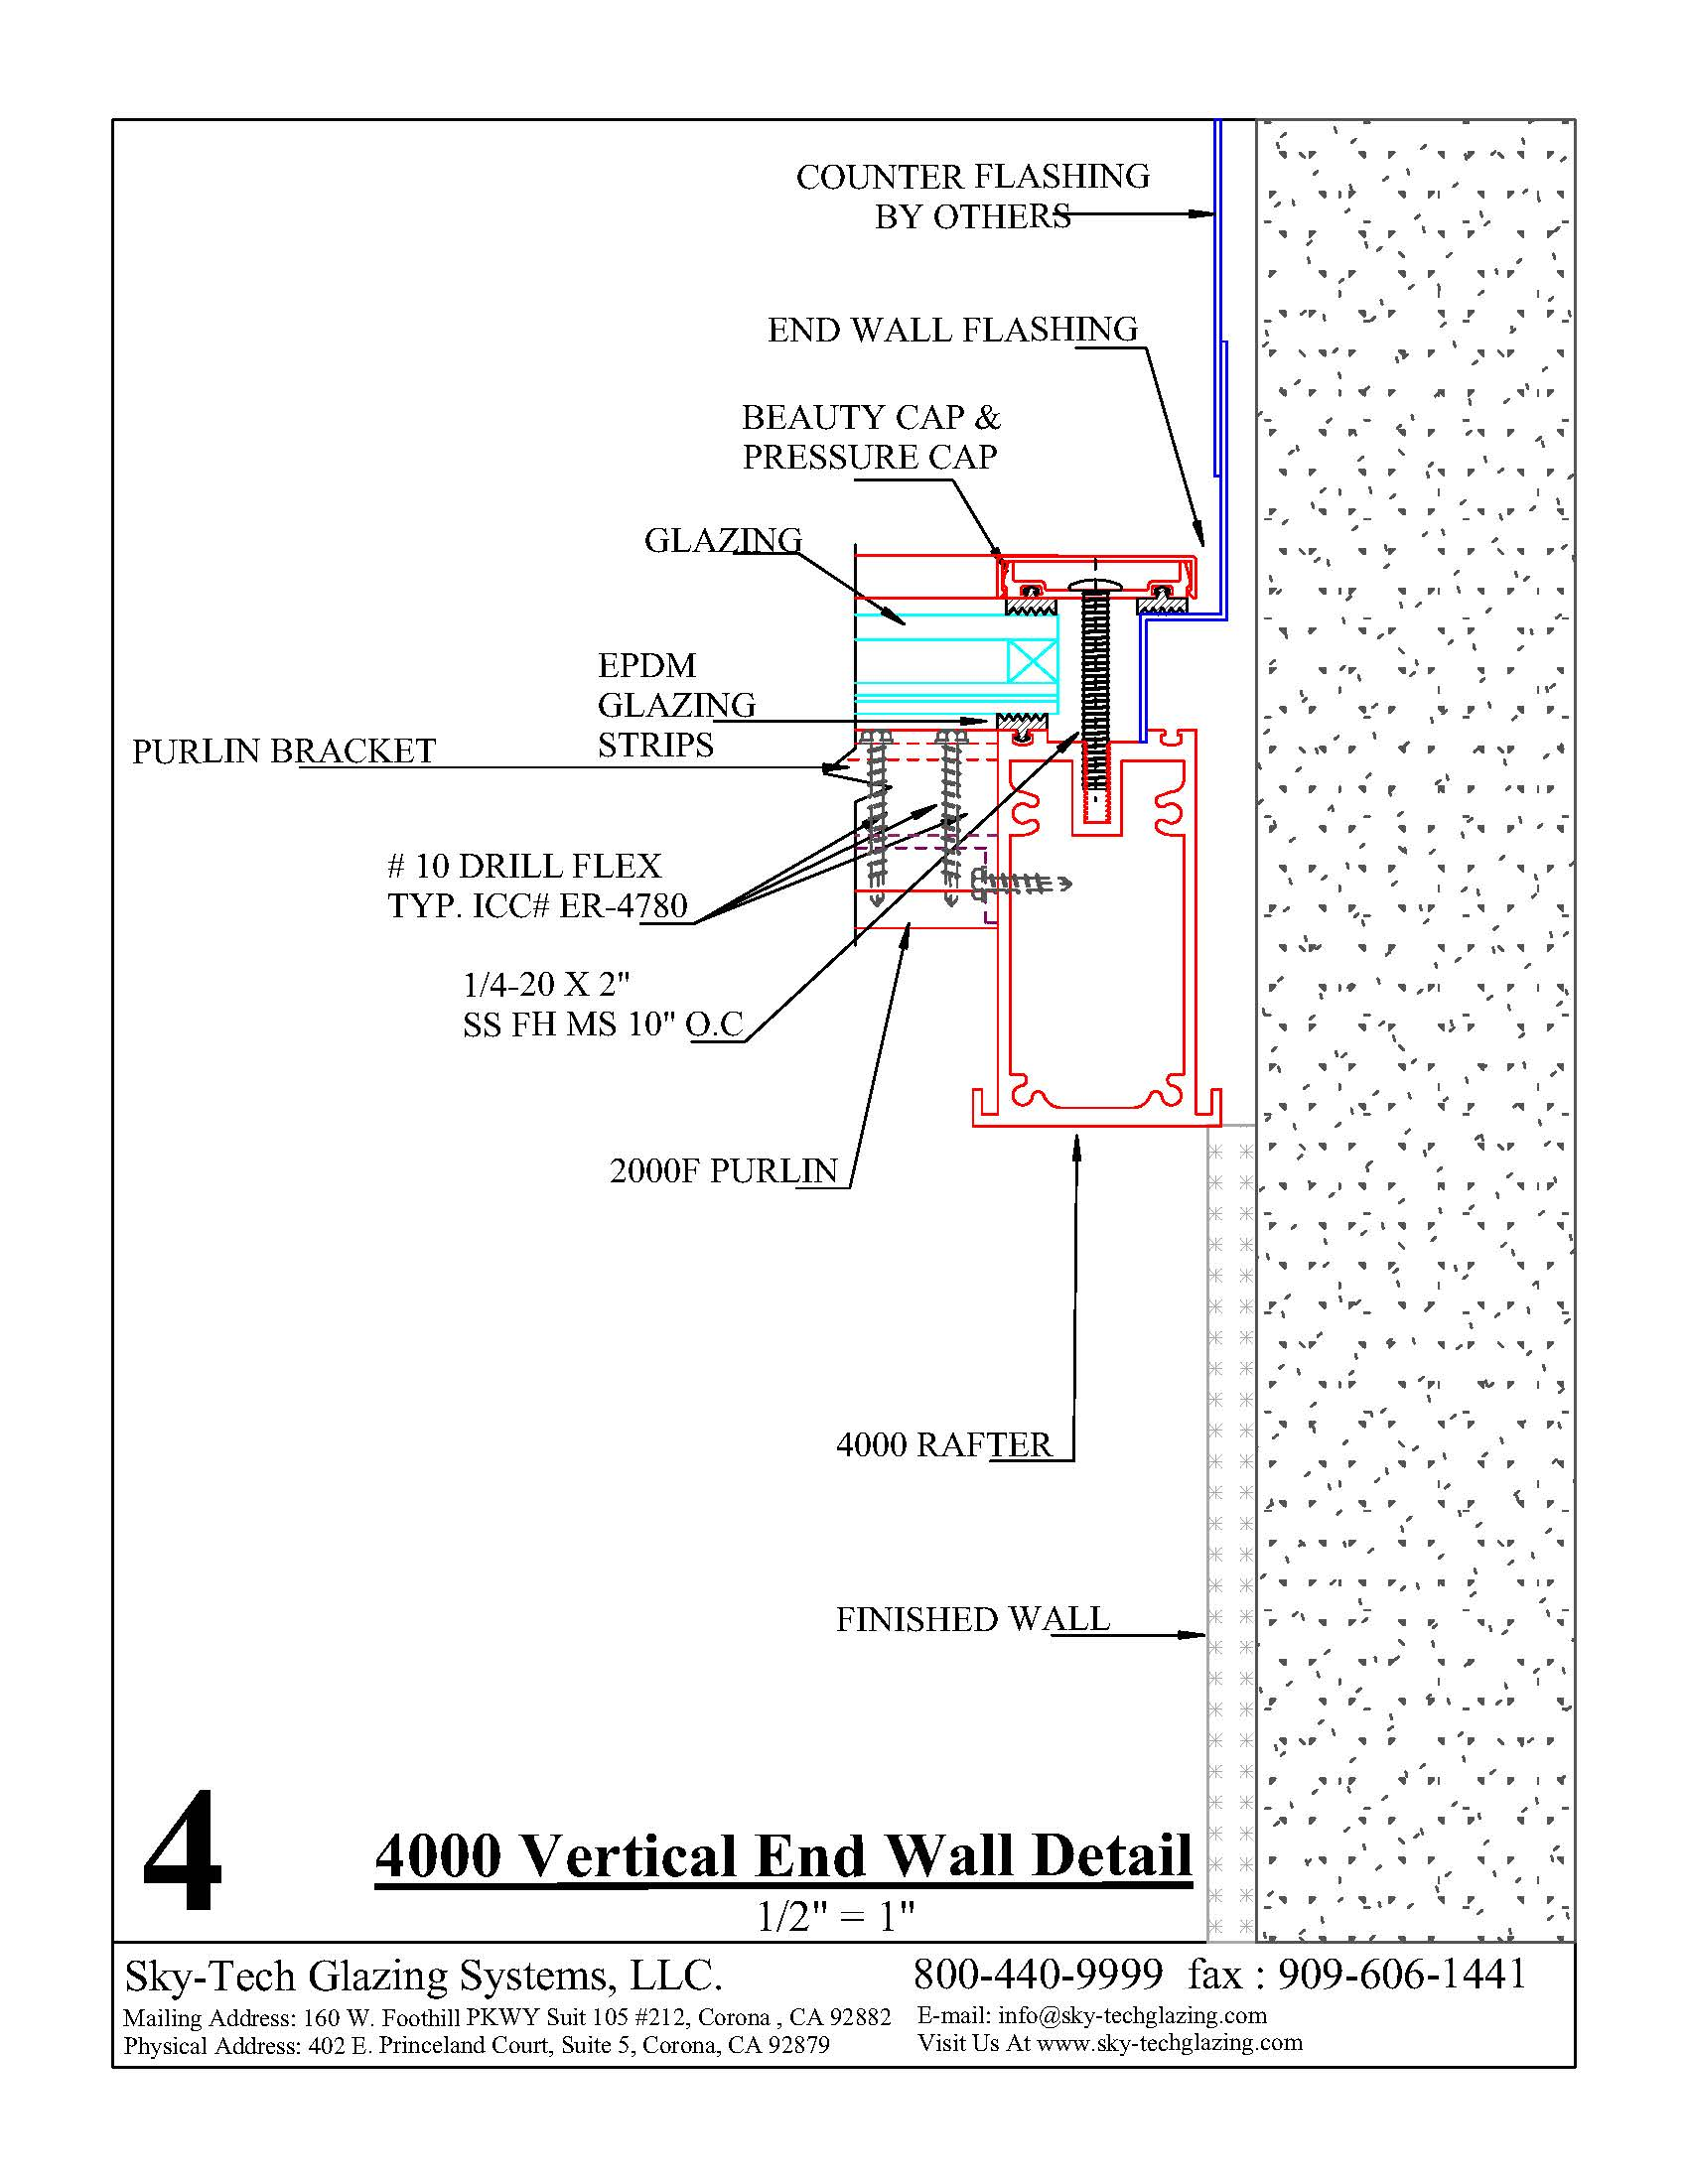 4 4000 Vertical End Wall Detail